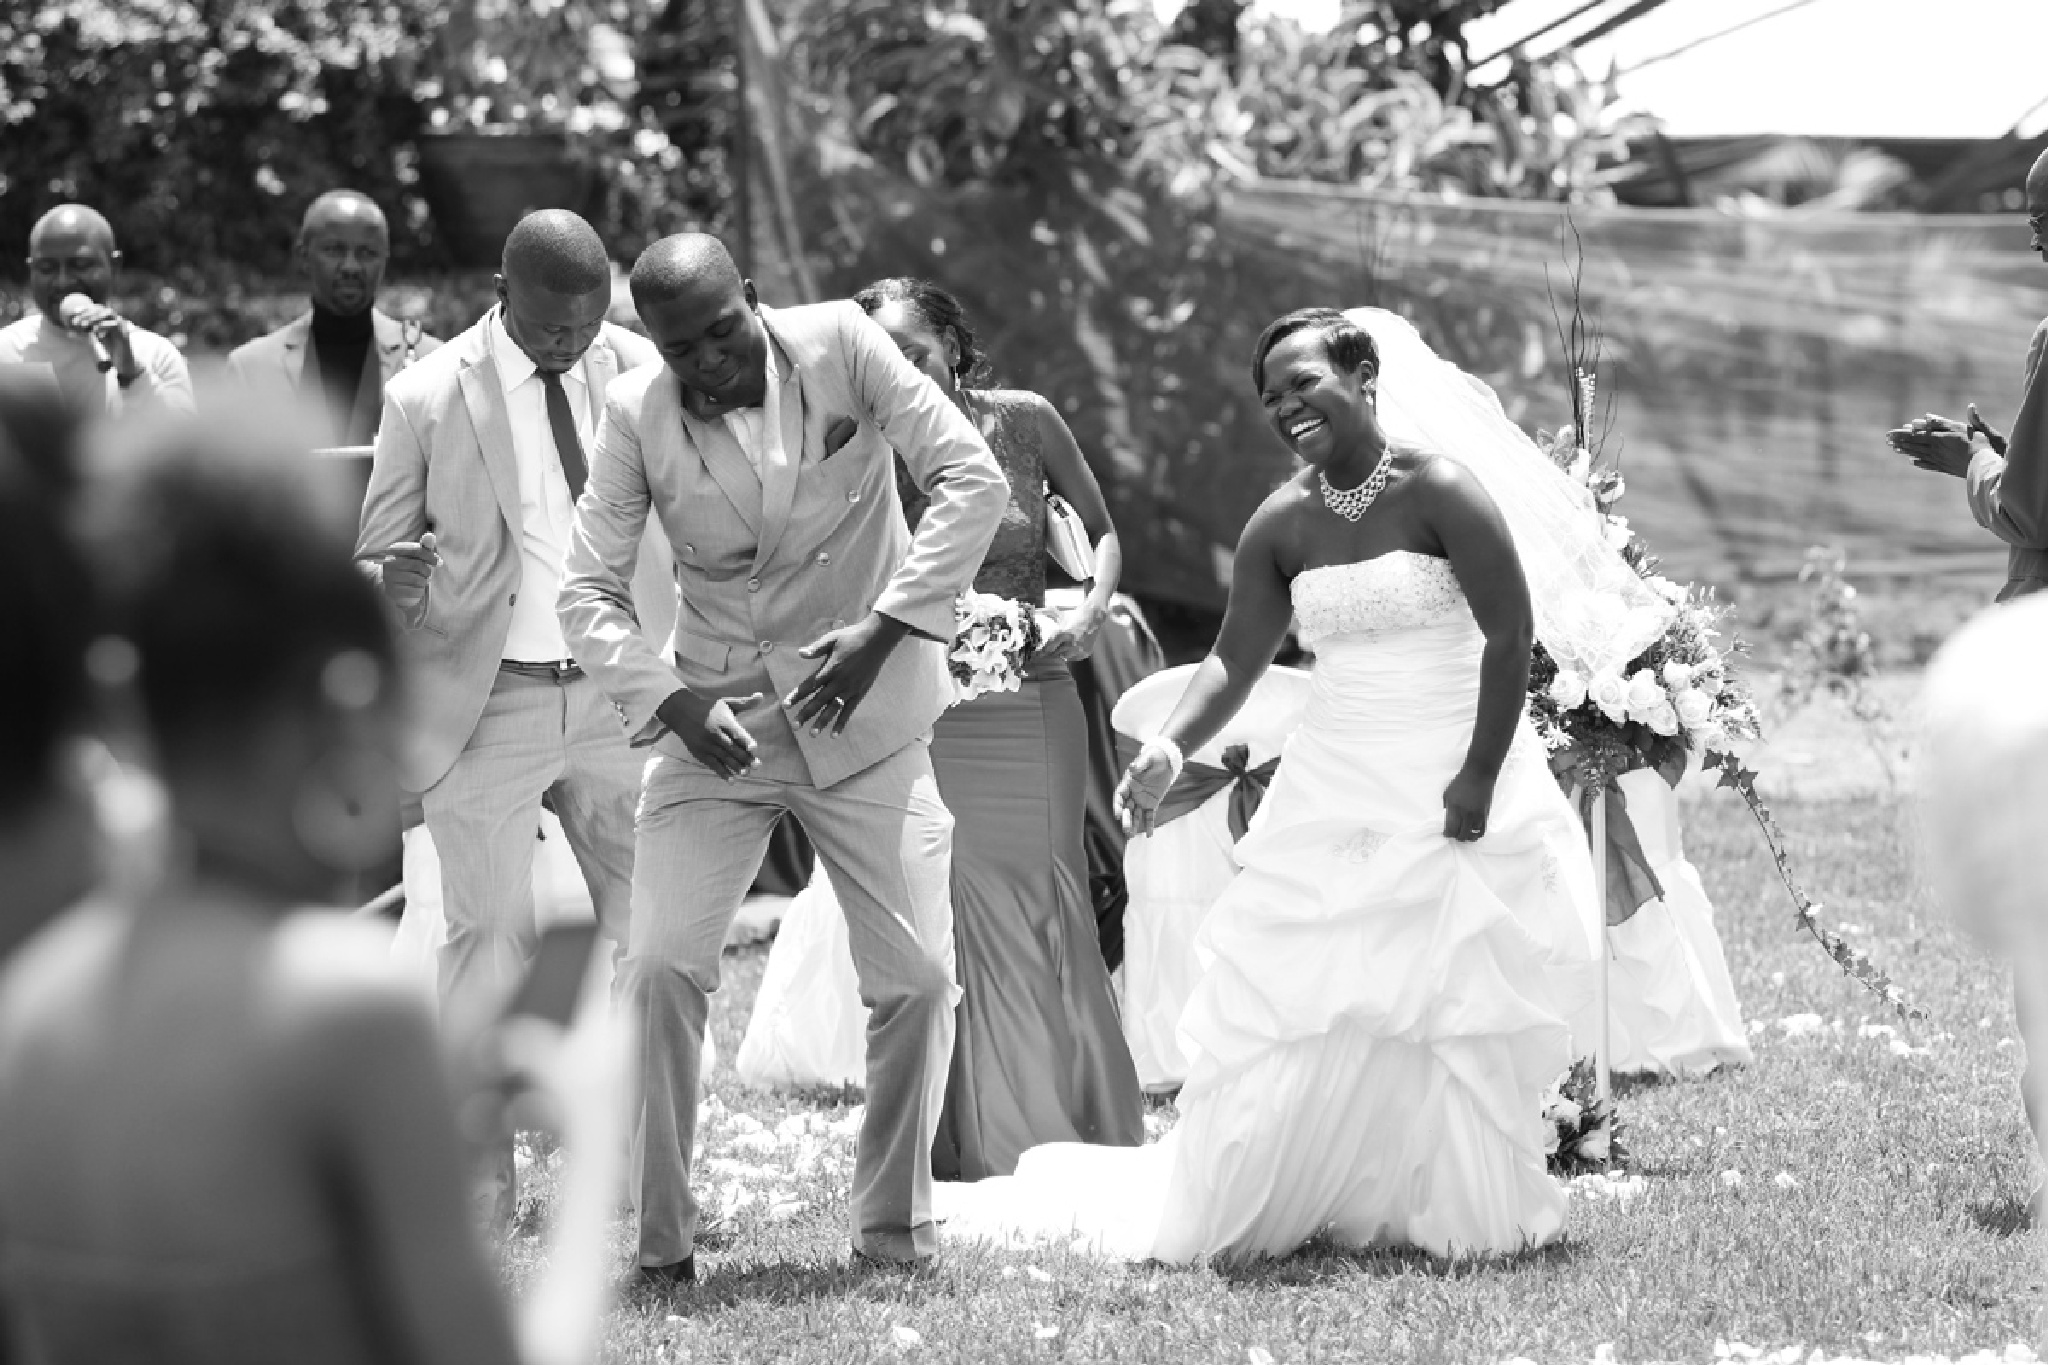 KENYA WEDDING PHOTOGRAPHER by Antony Trivet